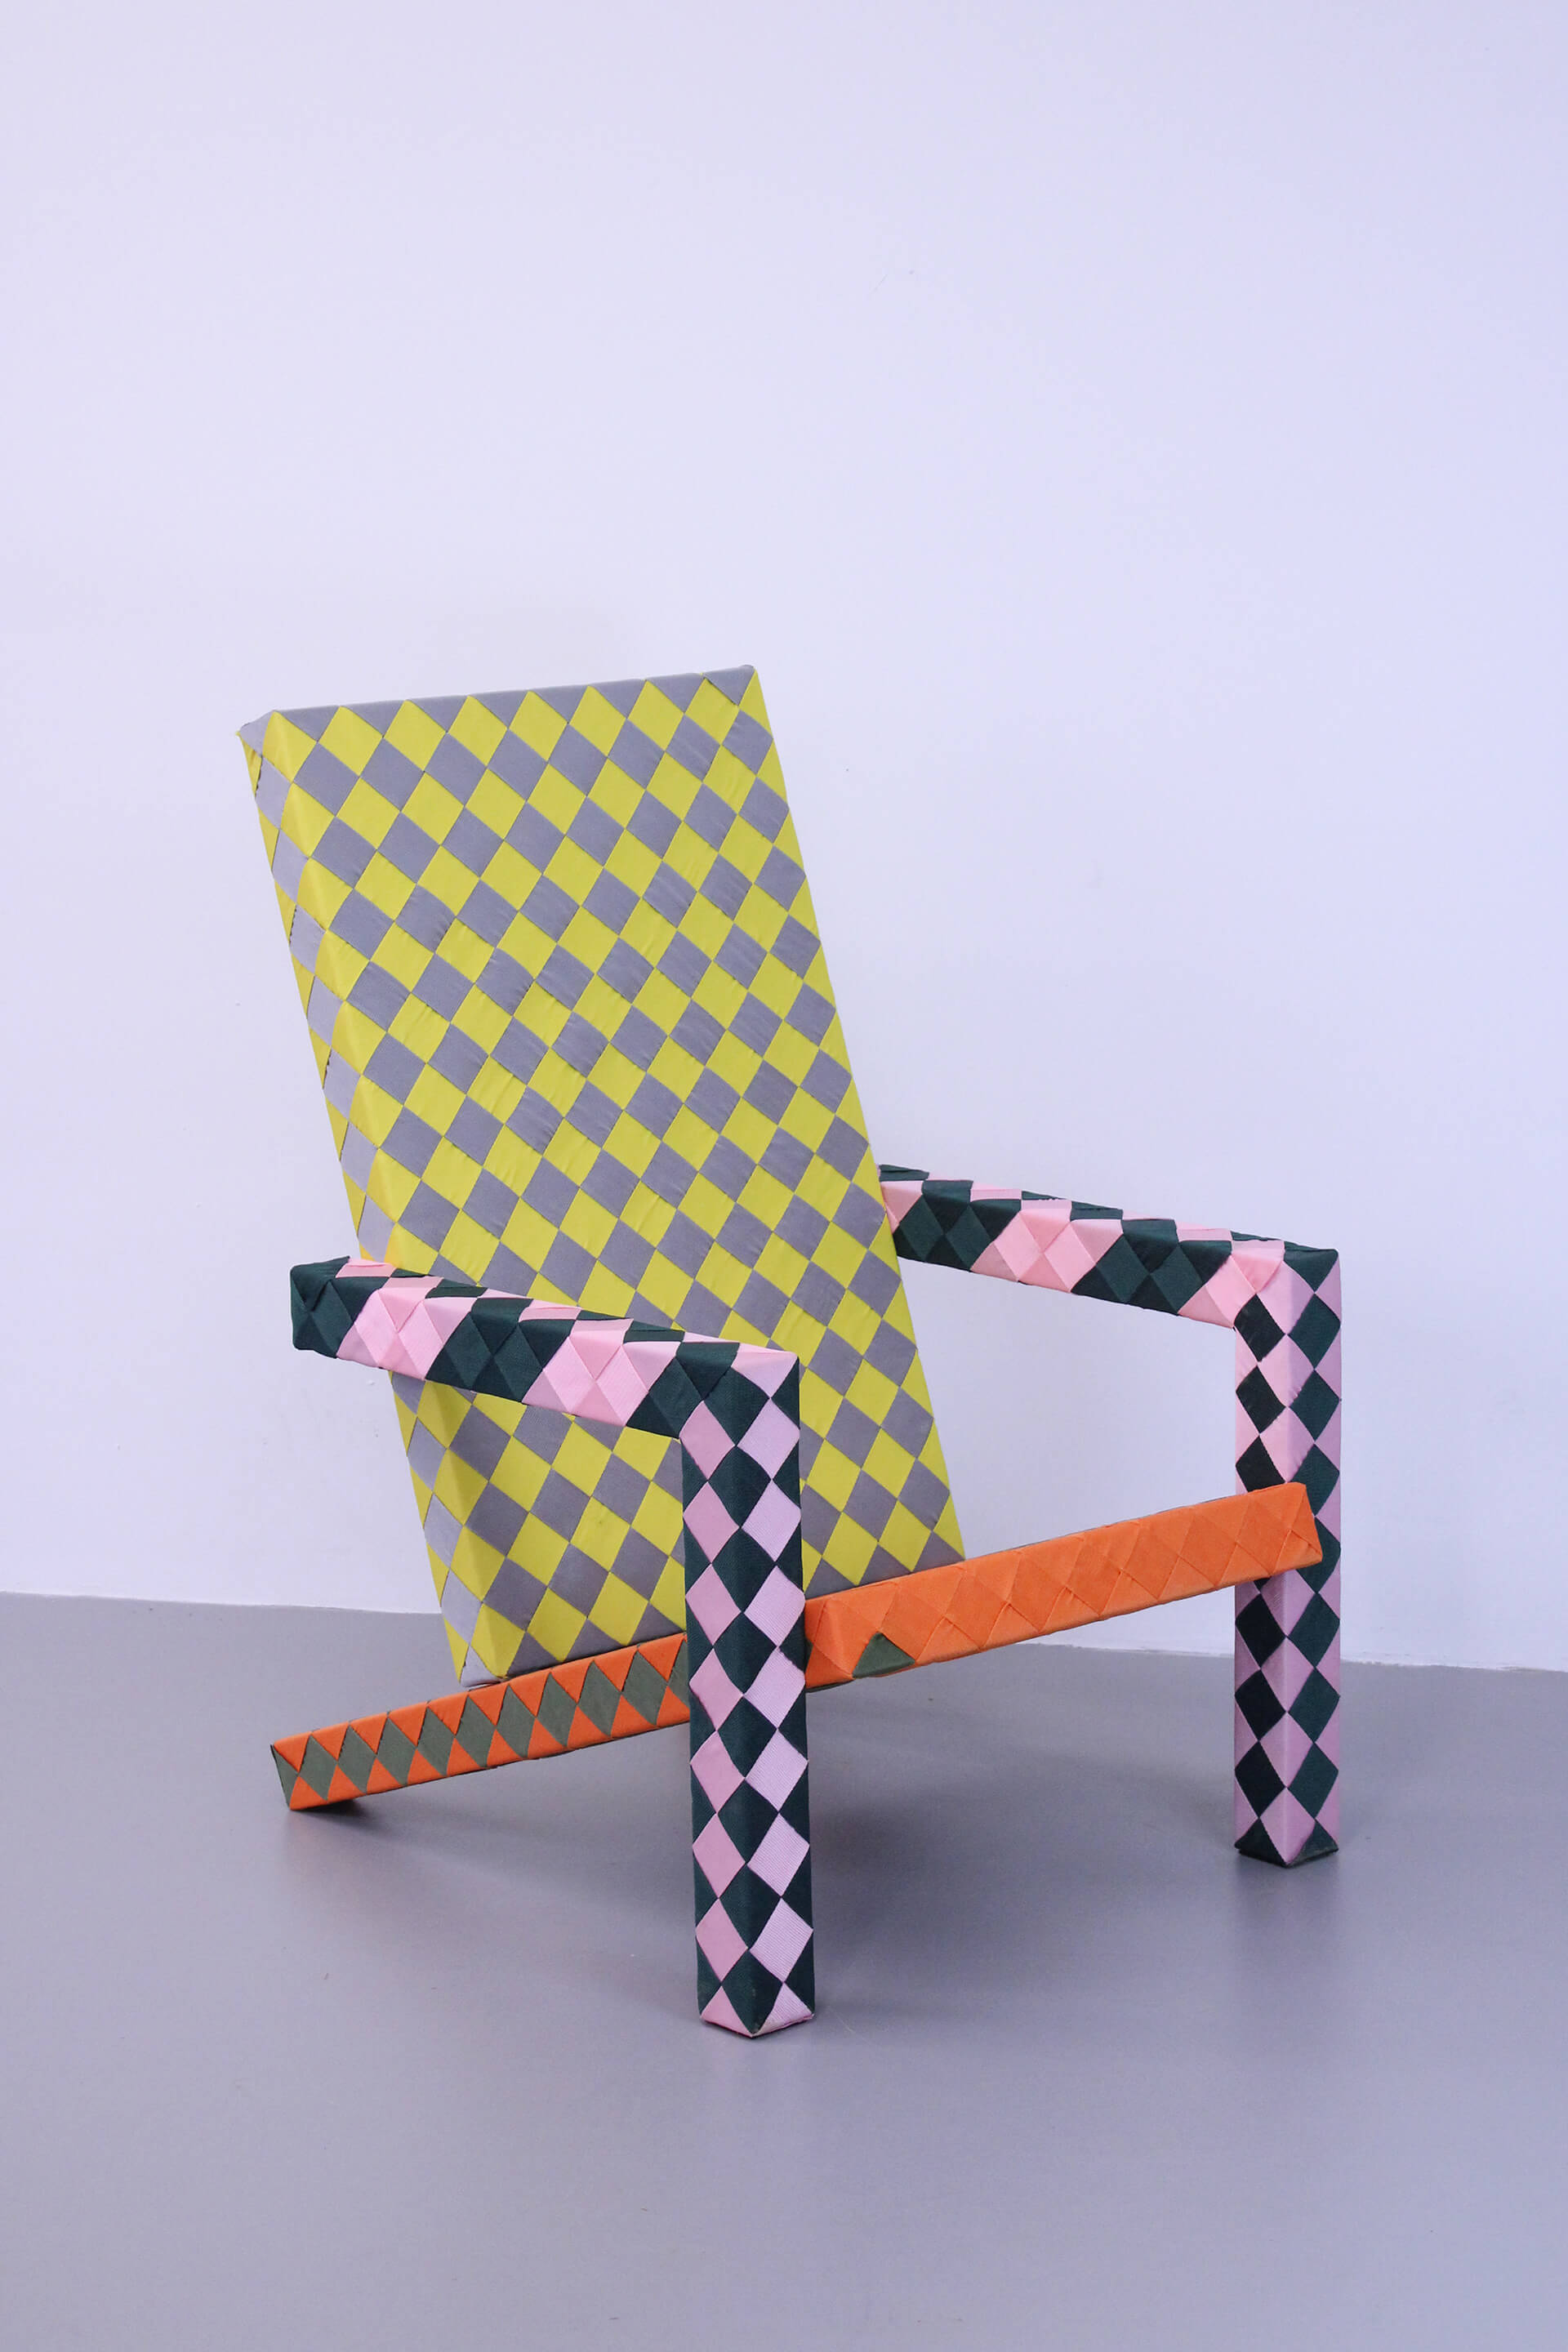 Handwoven checkered chair | Made in the Netherlands: Curated by Wendy Plomp | STIRworld